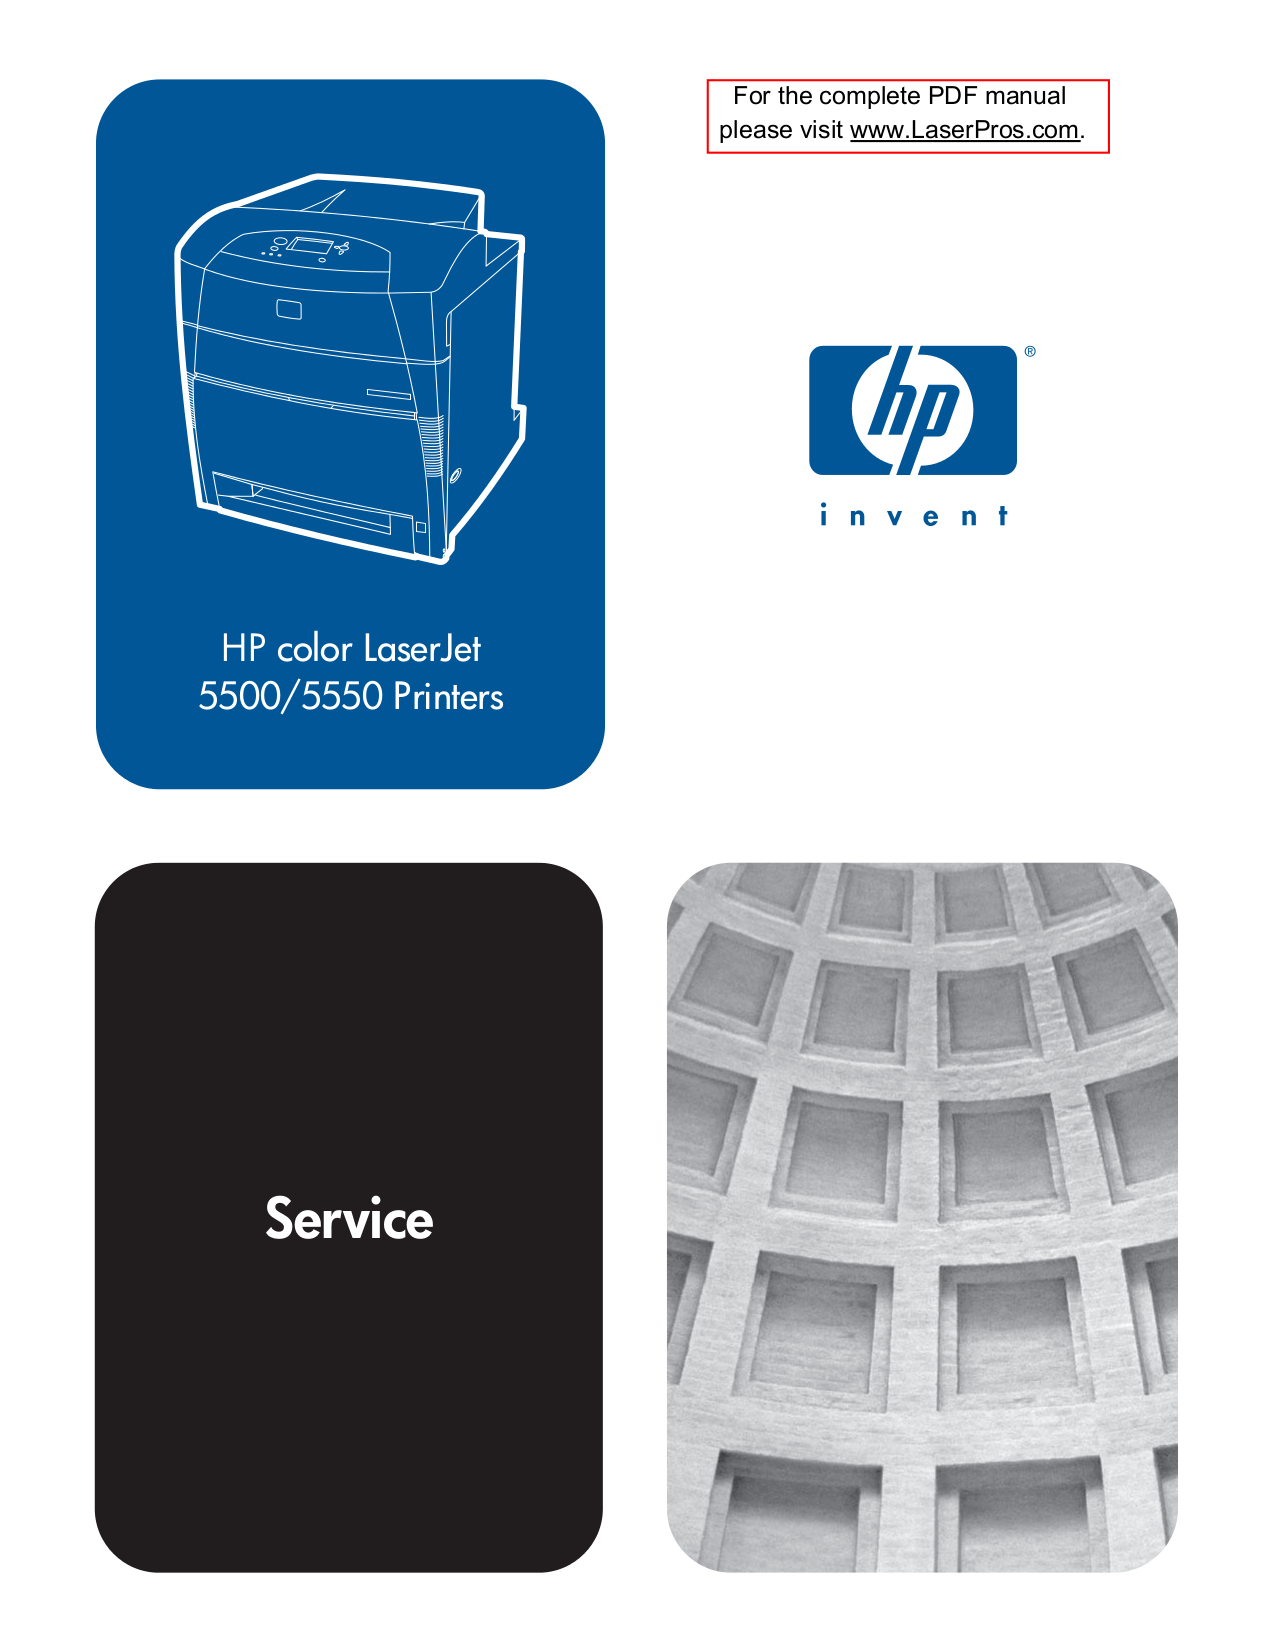 pdf for HP Printer Laserjet,Color Laserjet 5550n manual